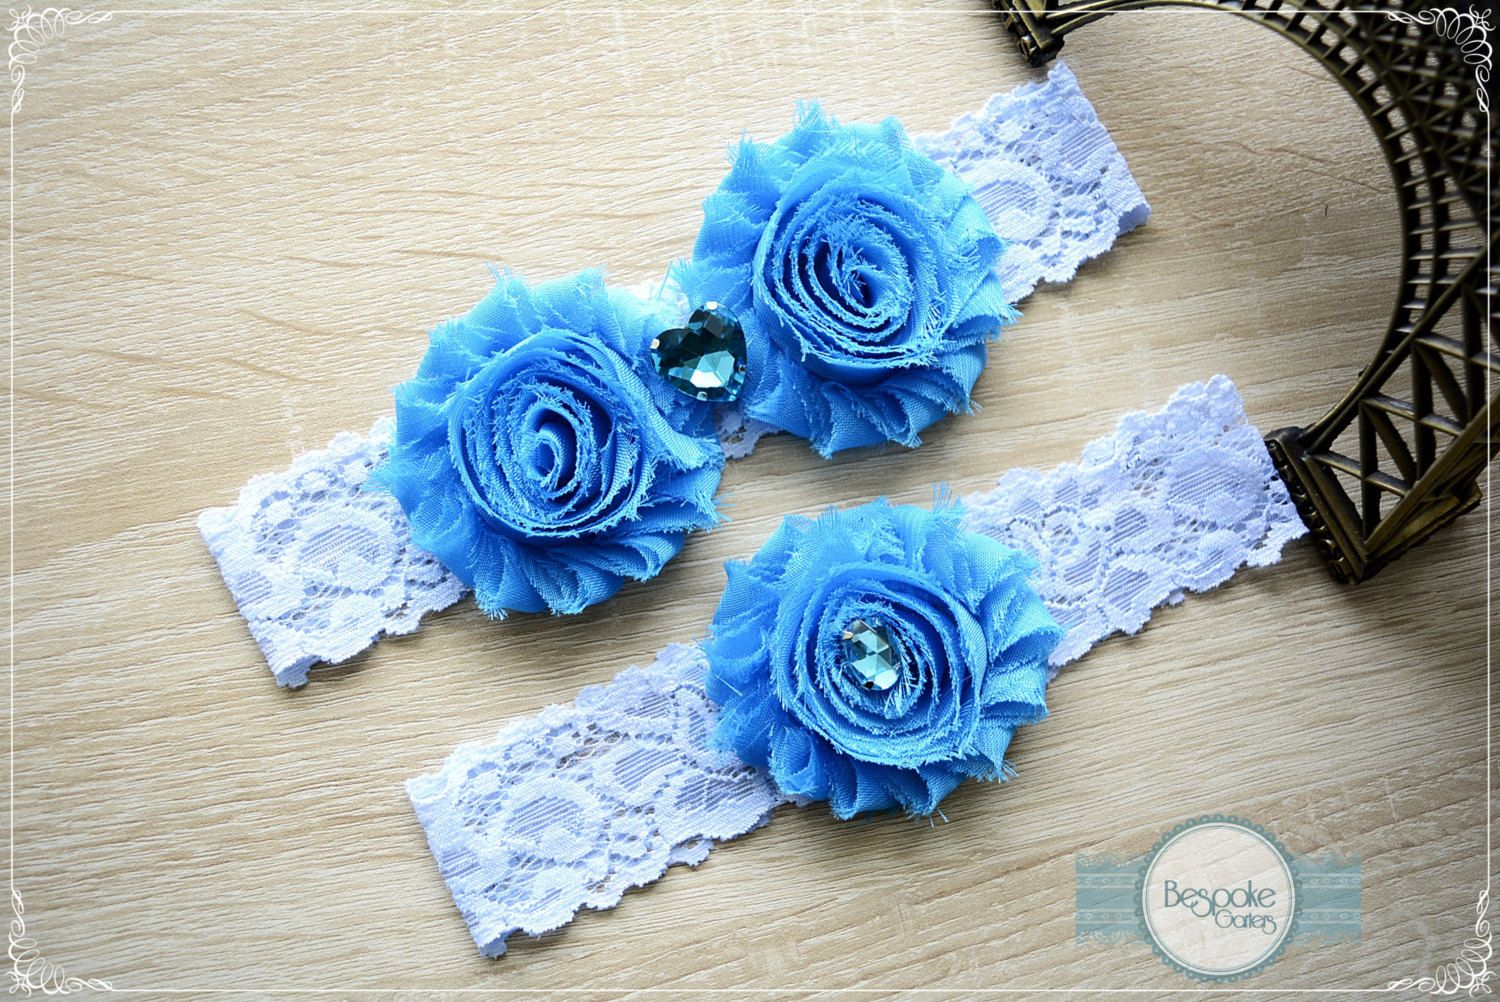 Denim Blue Wedding, Wedding Garter, Blue Lingerie, Garter Set Blue, Garter Blue, Blue Wedding, Toss Garter Blue, Sexy Blue Lingerie, Garters by BespokeGarters on Etsy